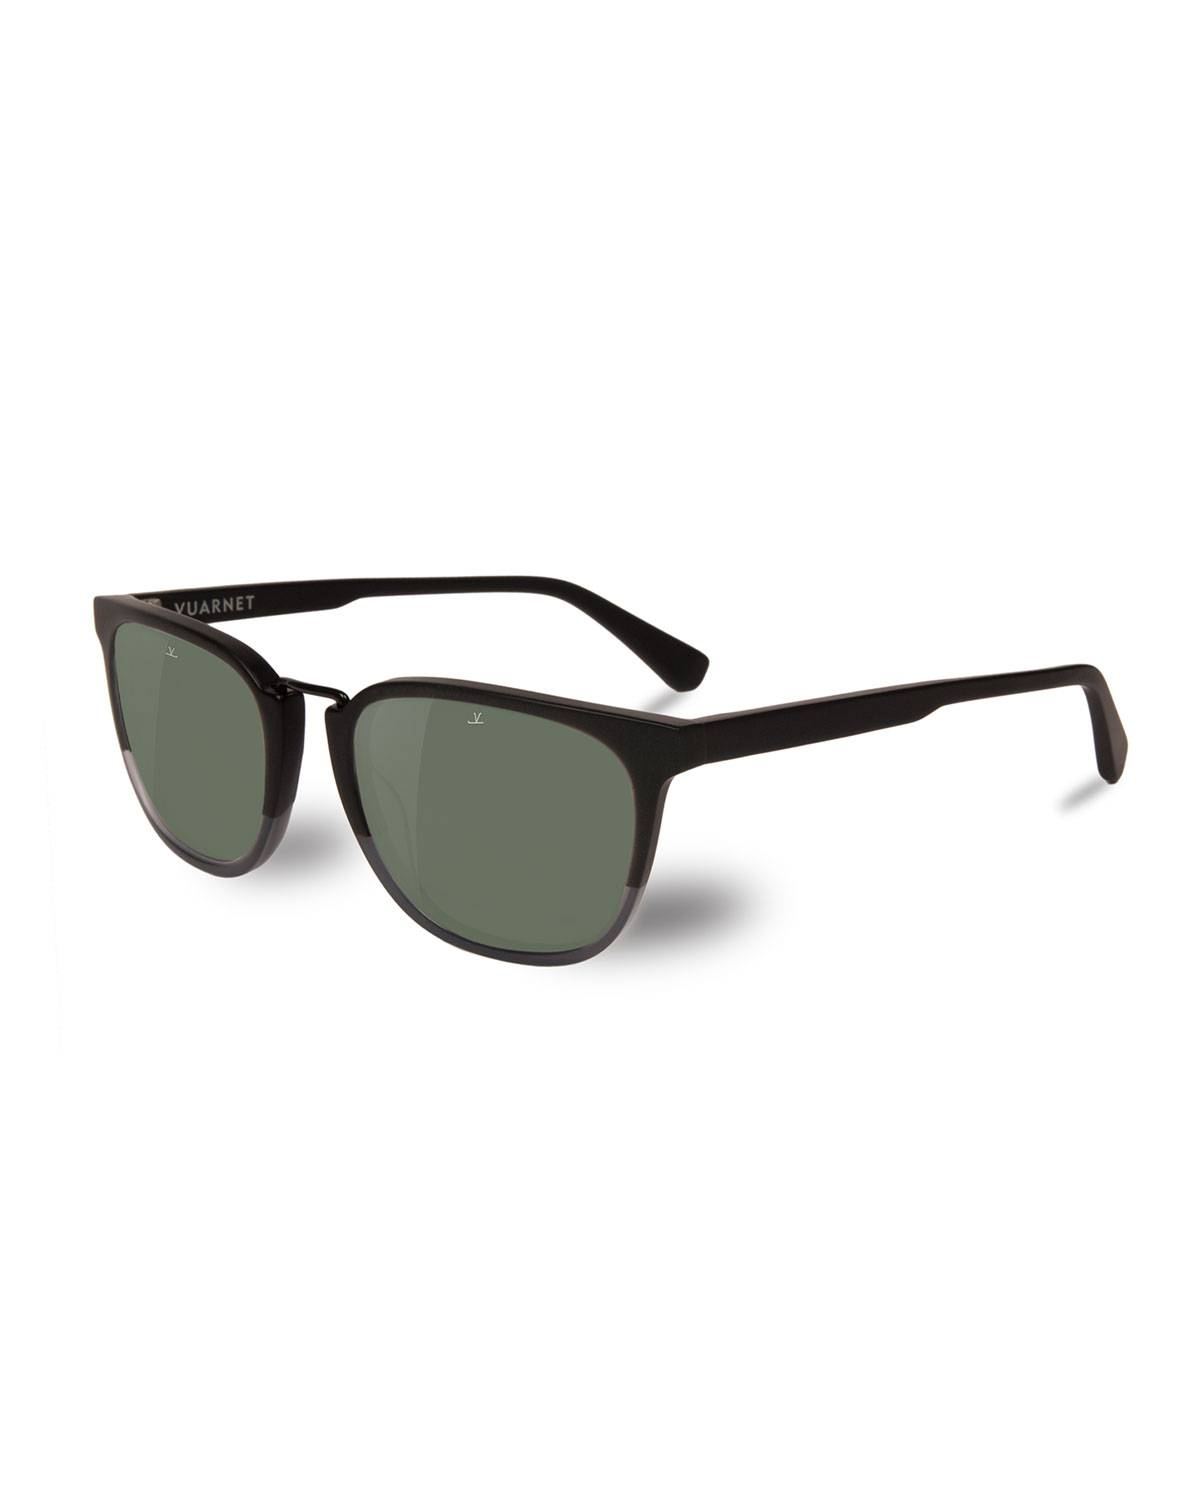 Vuarnet Men's Cable Car Square Polarized Stainless Steel/Acetate Sunglasses